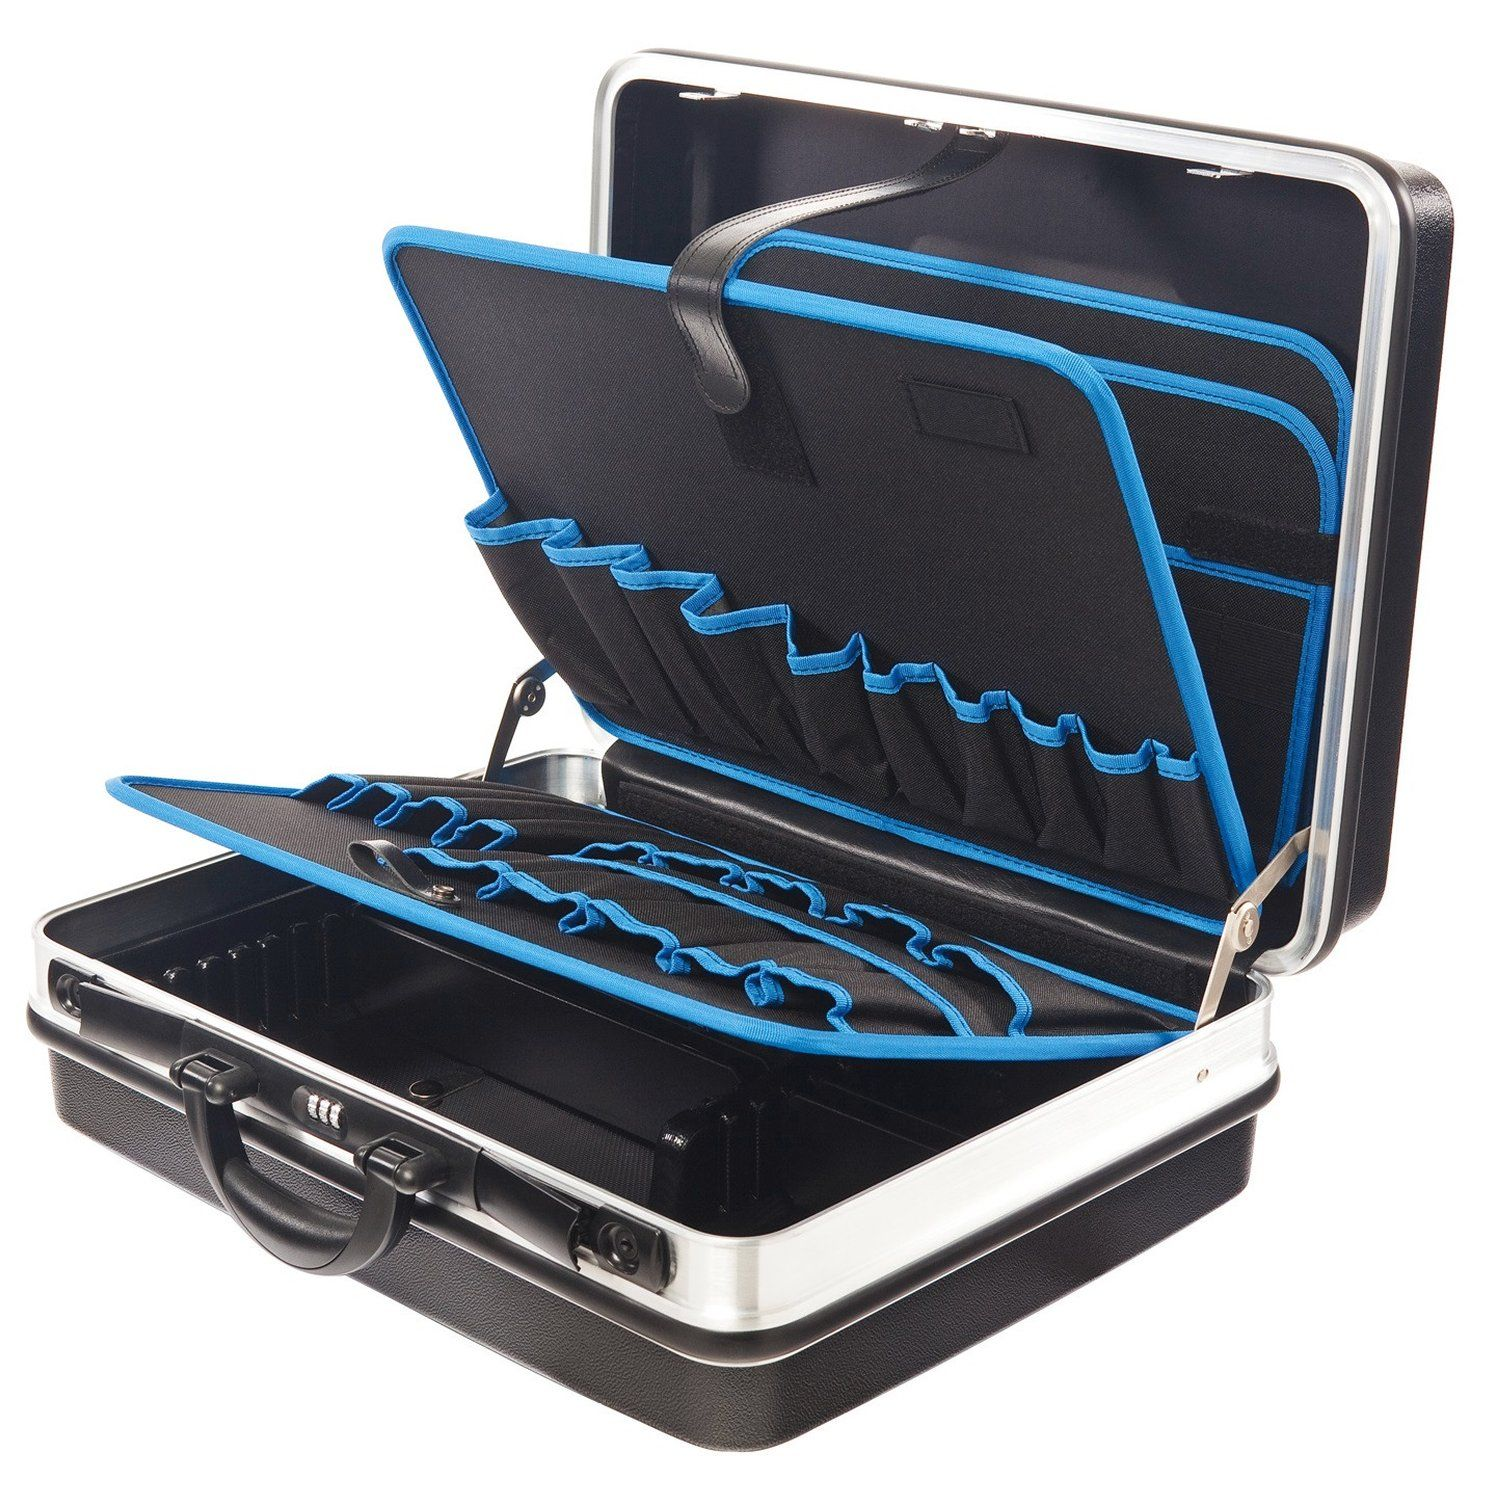 51003440fe05a LUX ABS Werkzeugkoffer in 2019 | gun case / tool boxes | Tool ...